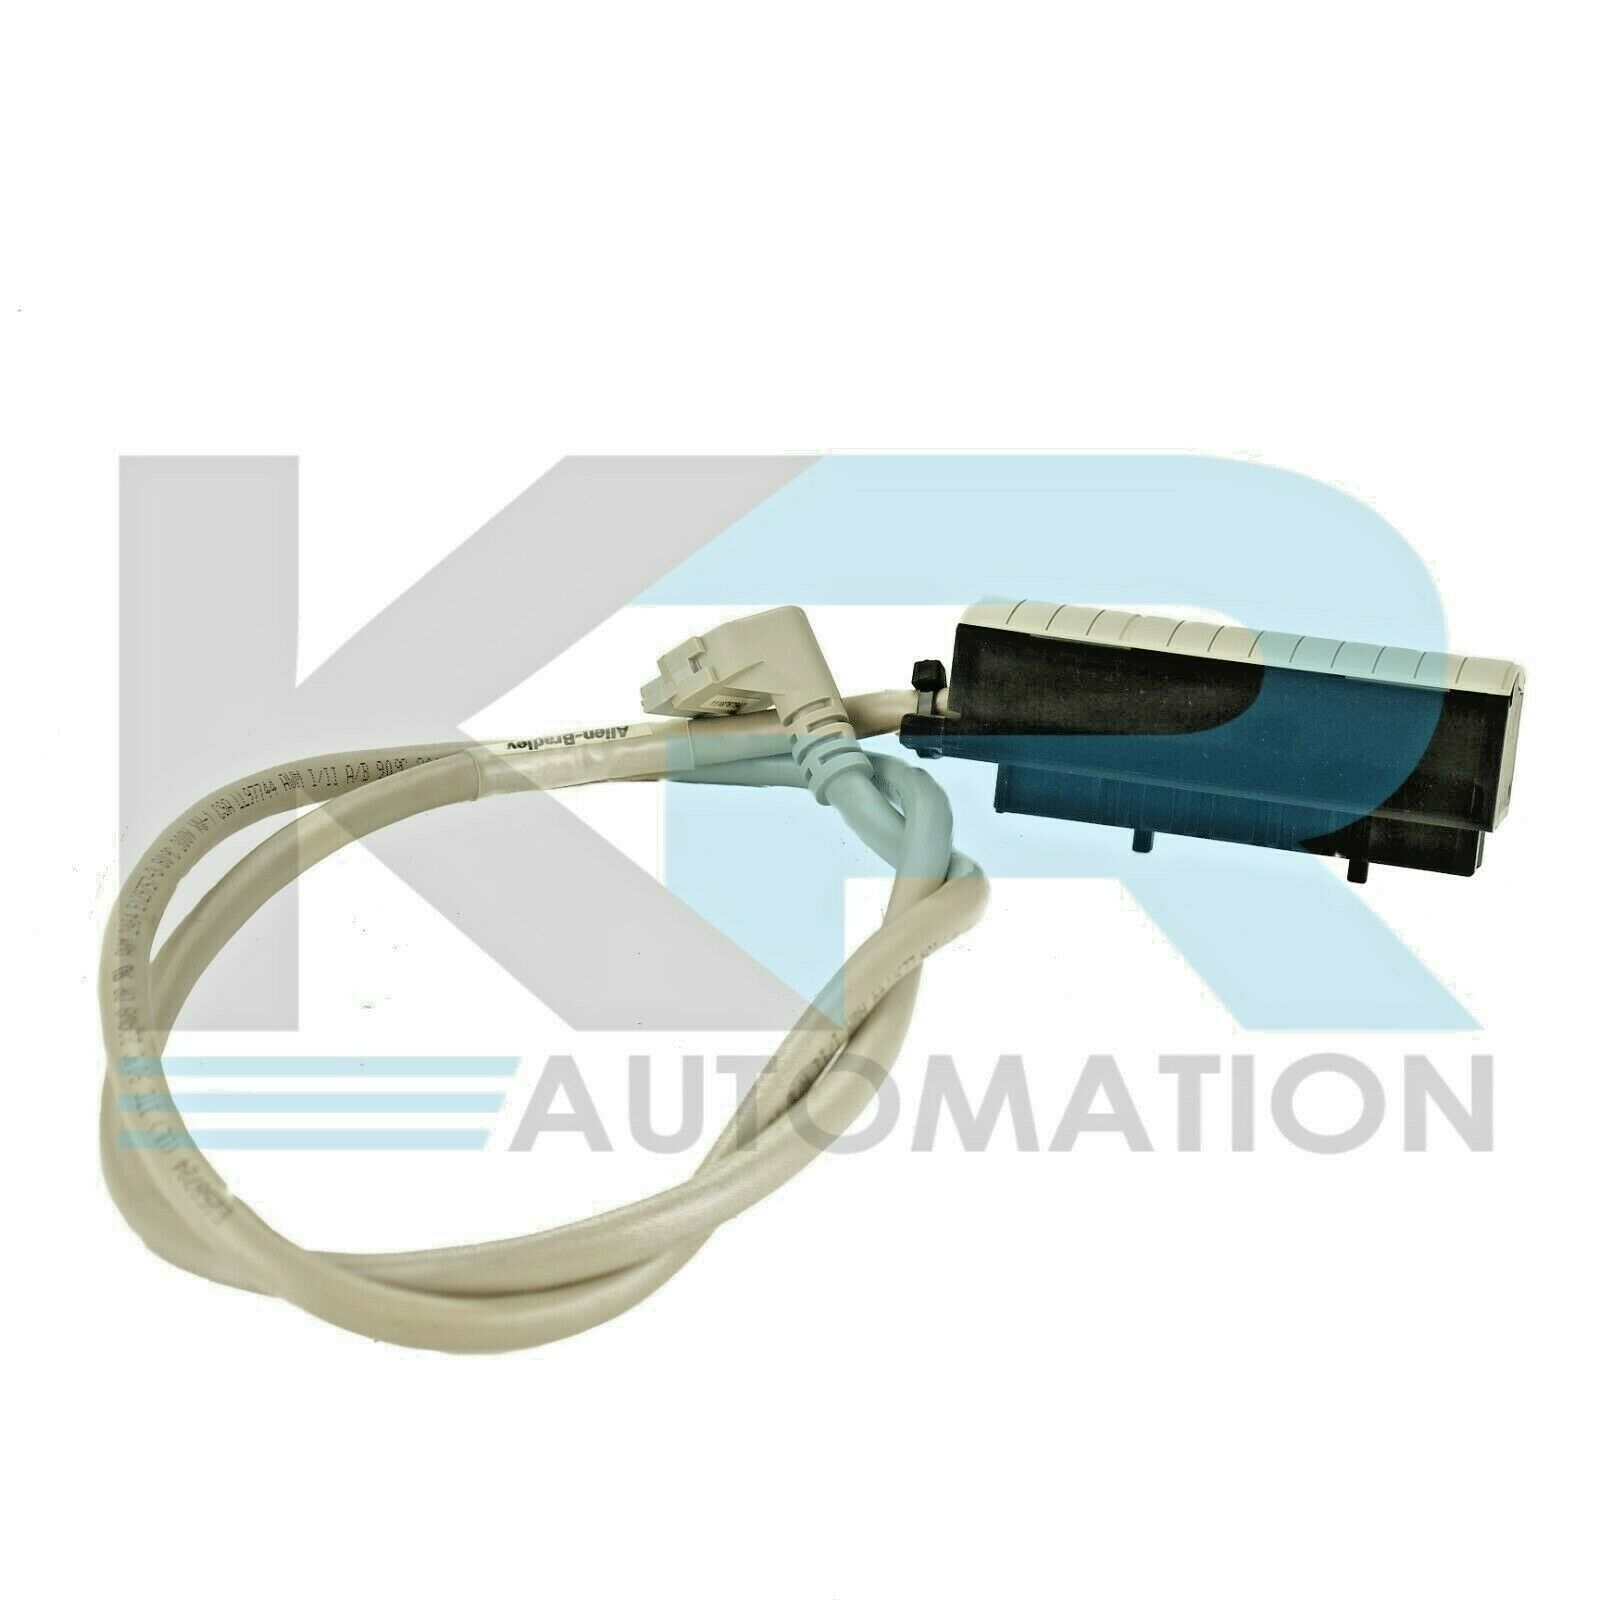 Allen Bradley 1492-ACABLE010X /C Pre-wired Cable